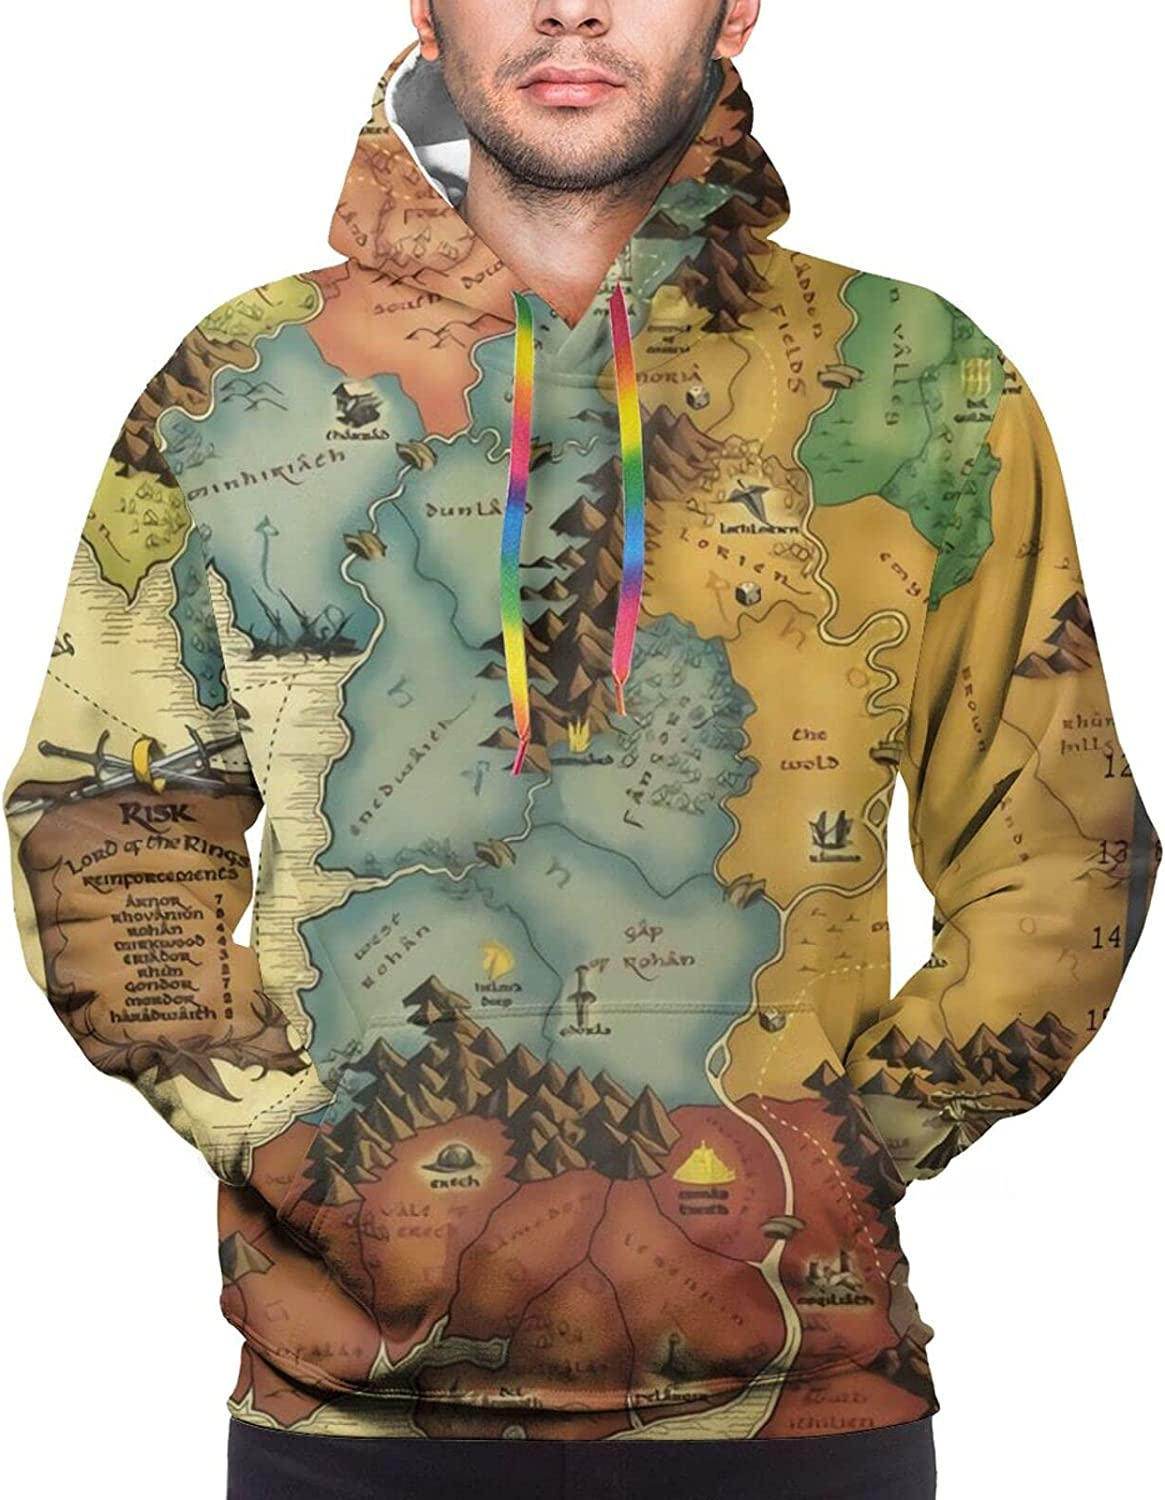 Hoodie For Teens Boys Girls Colorful Map Adventure Hoodies Outdoor Sports Sweater